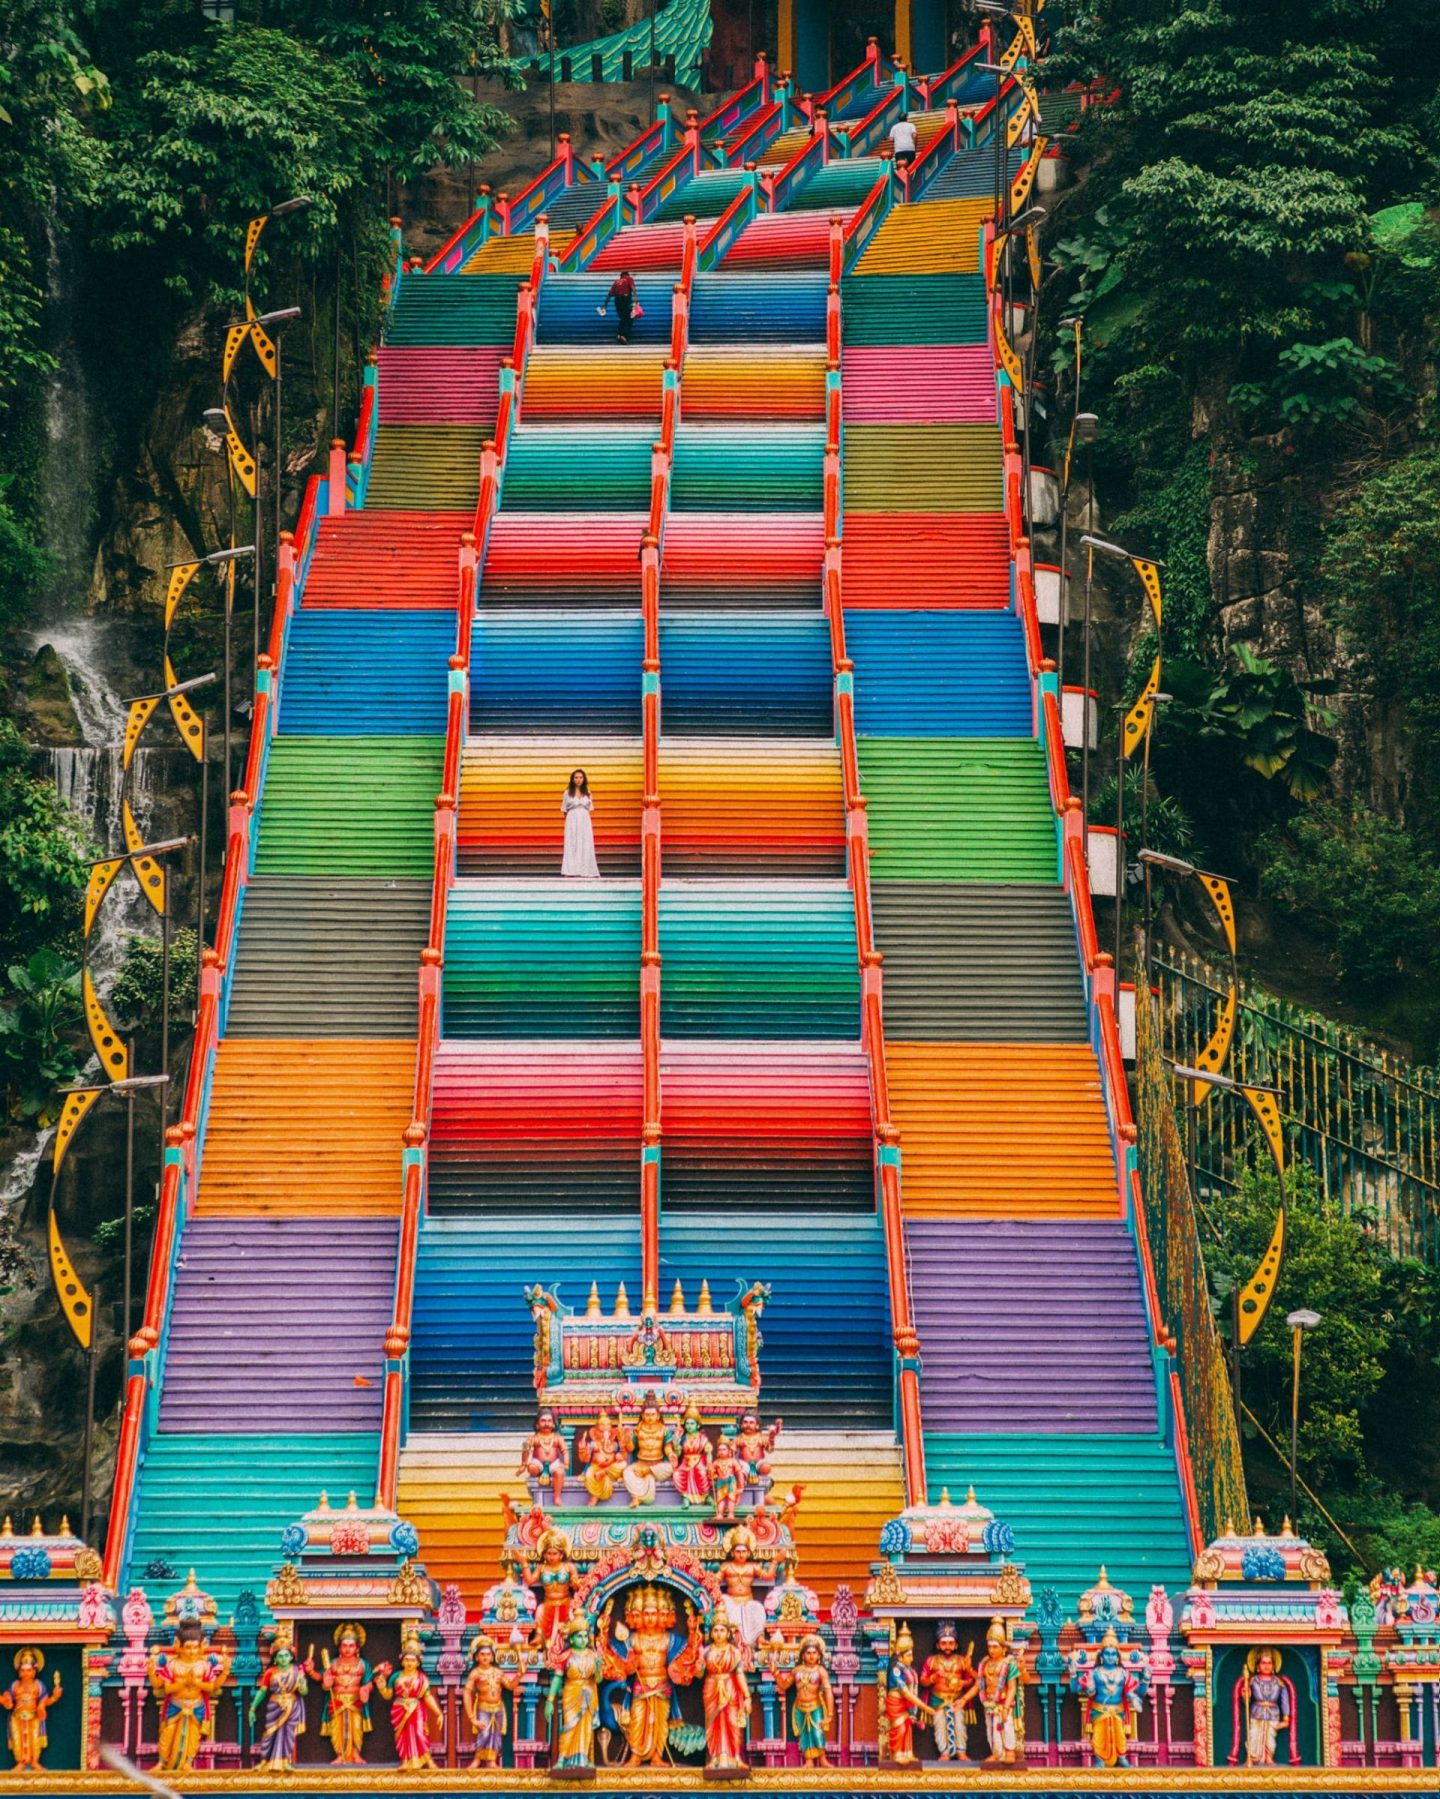 women at the rainbow stairs in the Batu caves